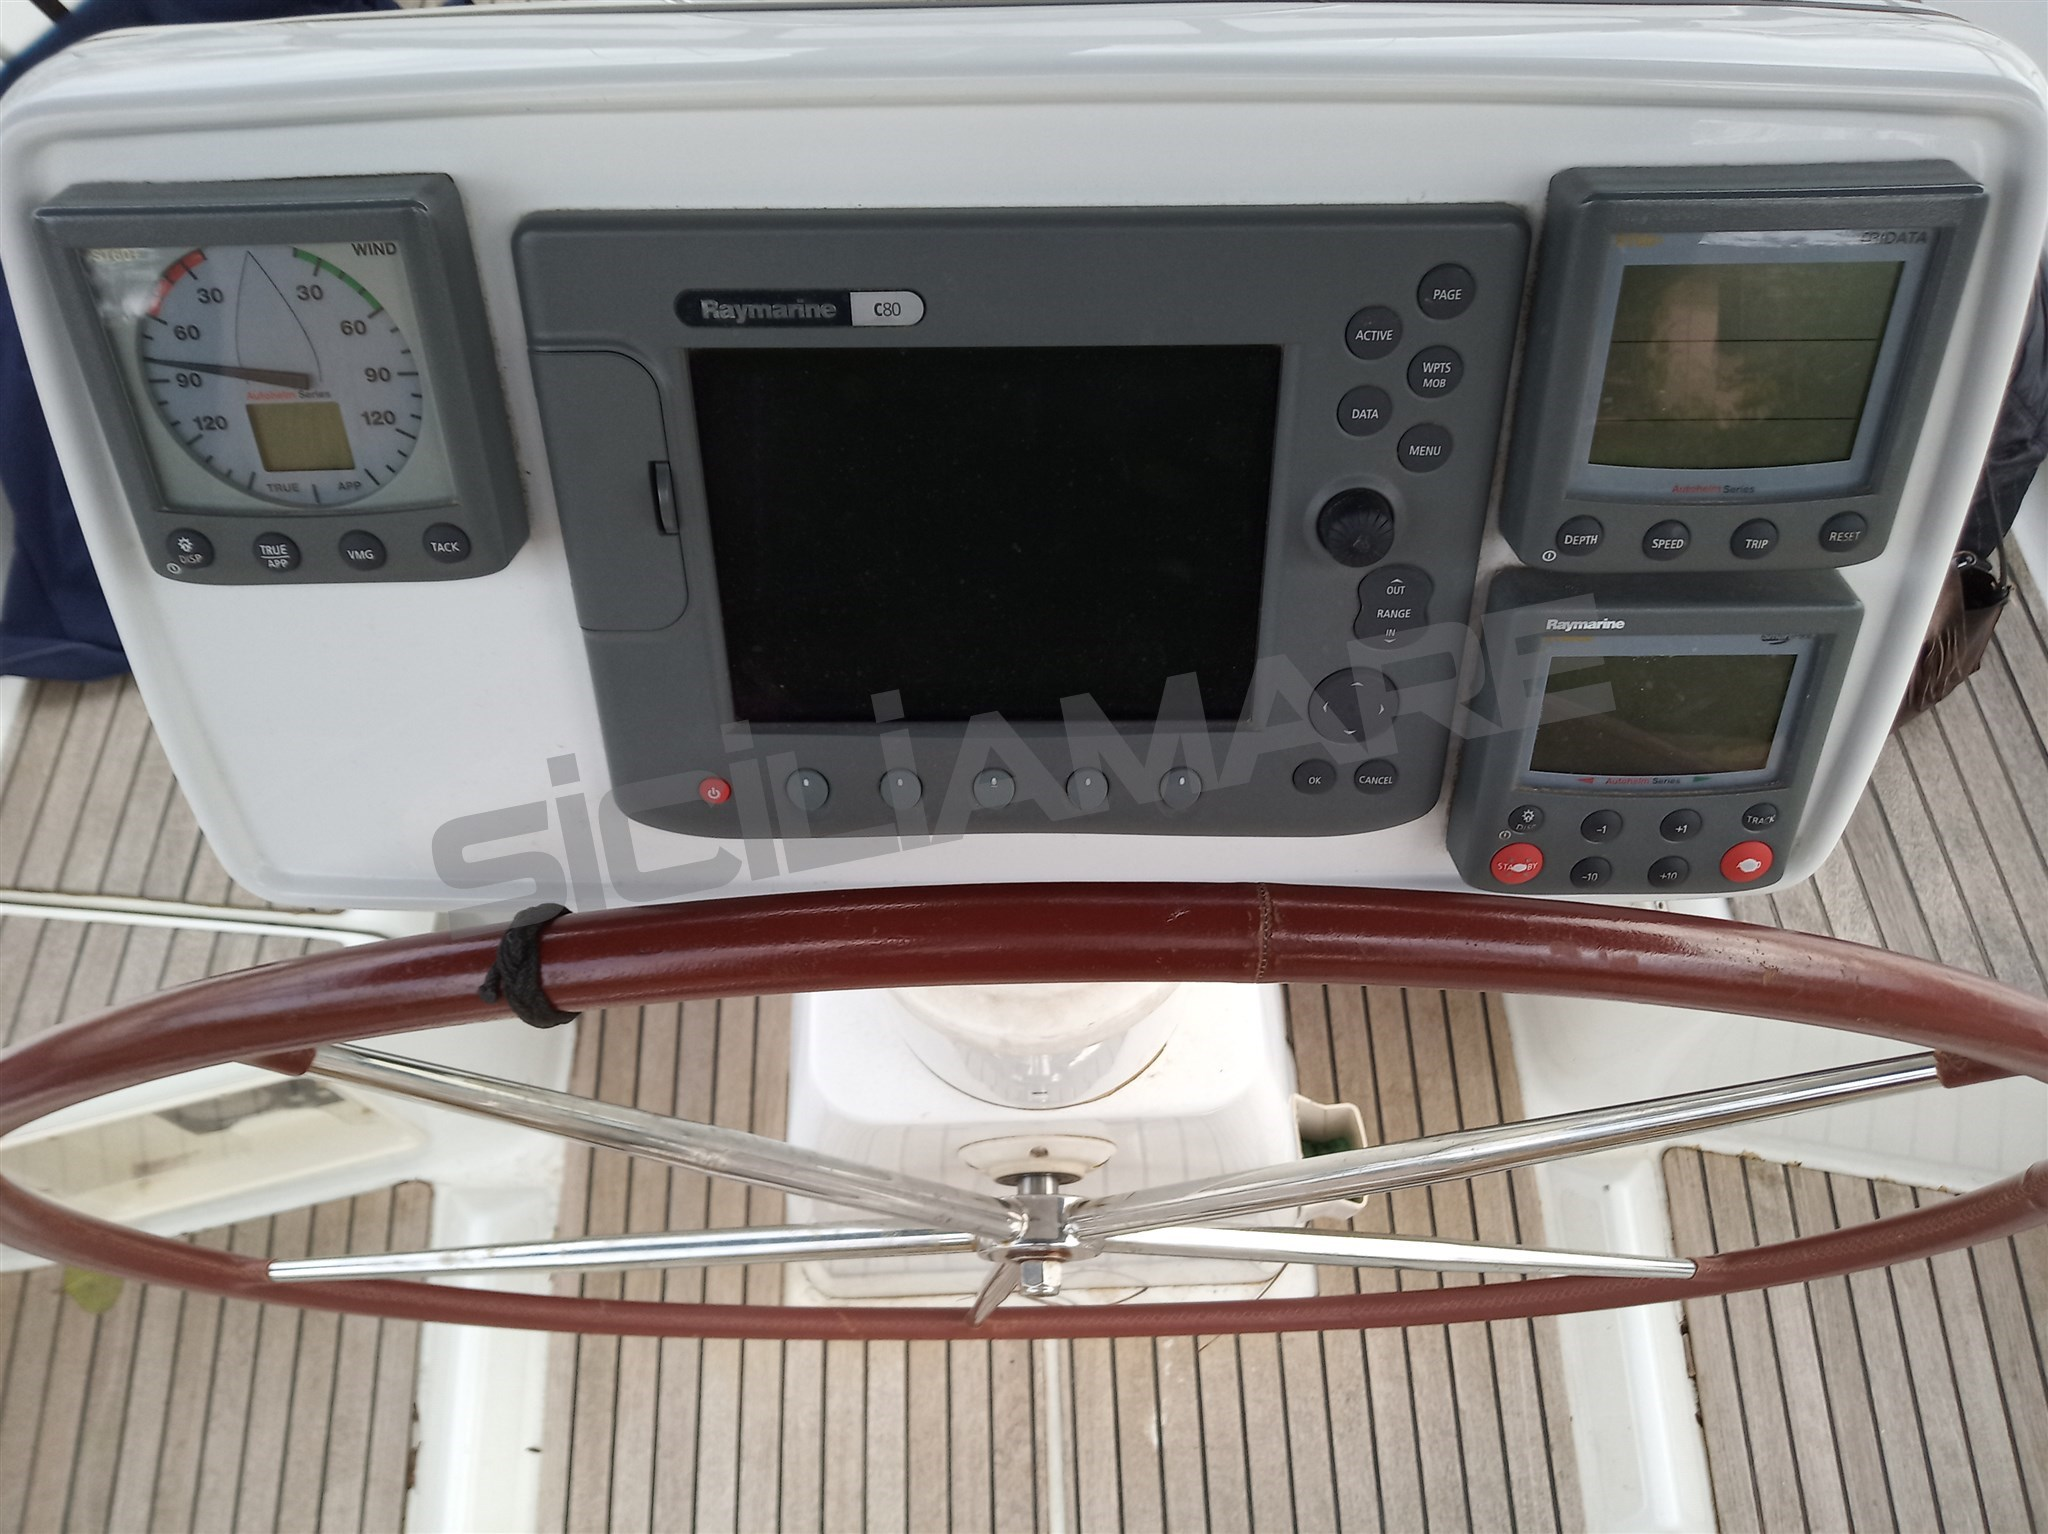 Jeanneau Sun Odyssey 36i, preowned sailboat for sale in Sicilia (Italy)